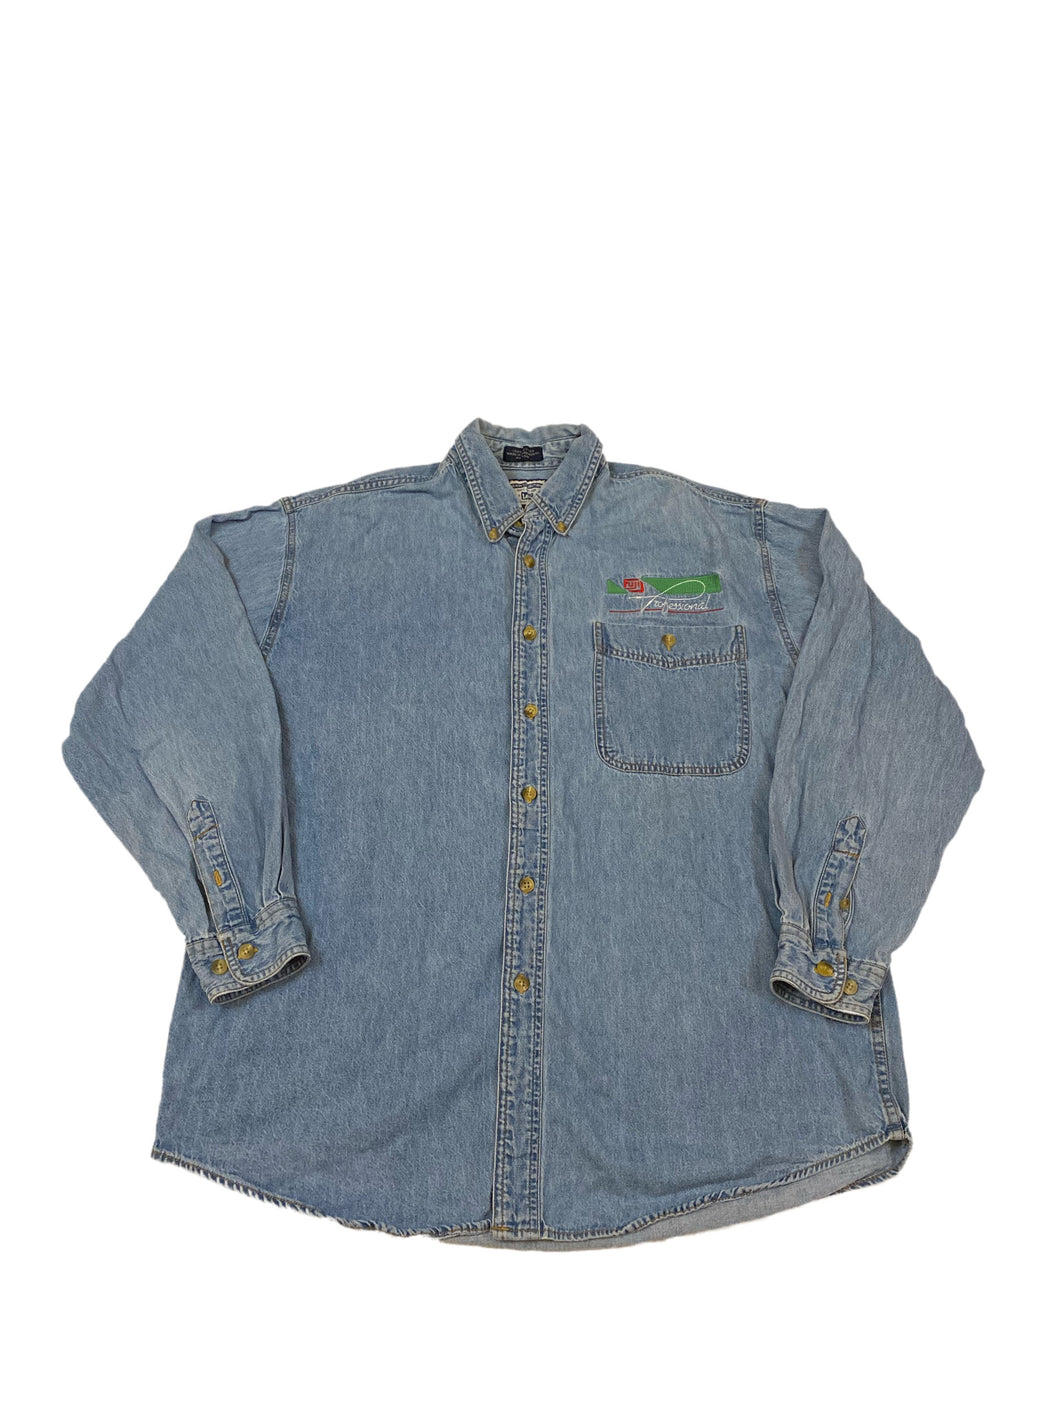 Fuji Professional Denim Button Down